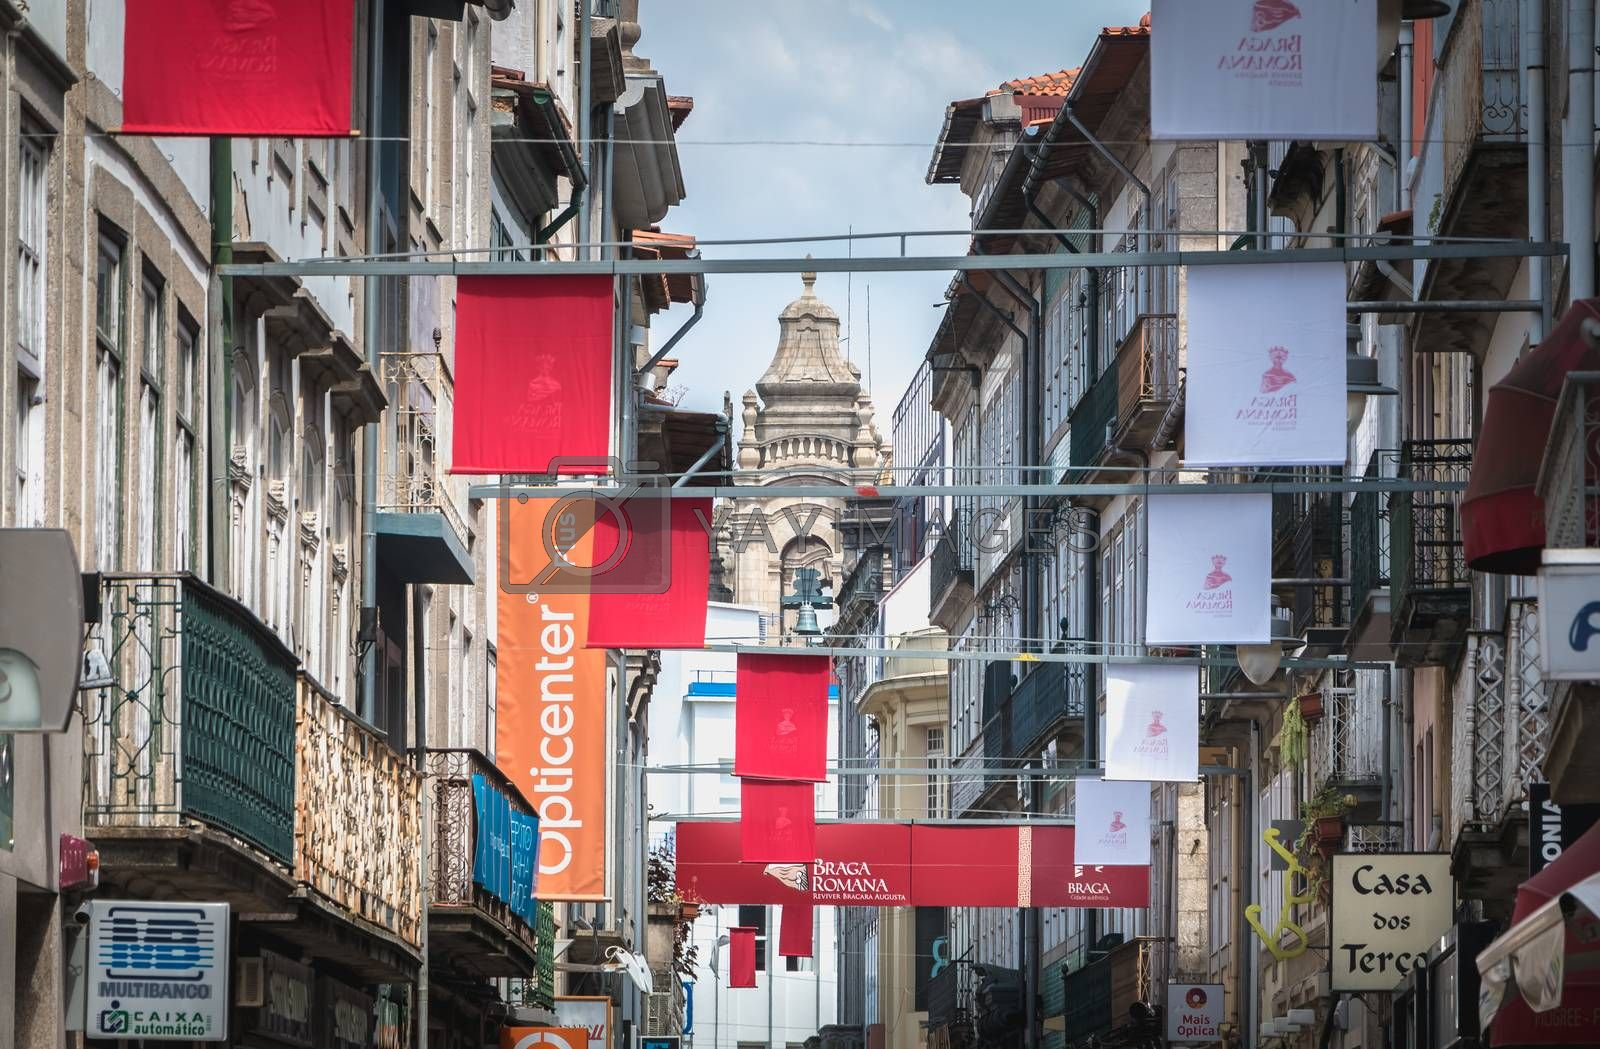 View of a street in the historic city center decorated for the c by AtlanticEUROSTOXX